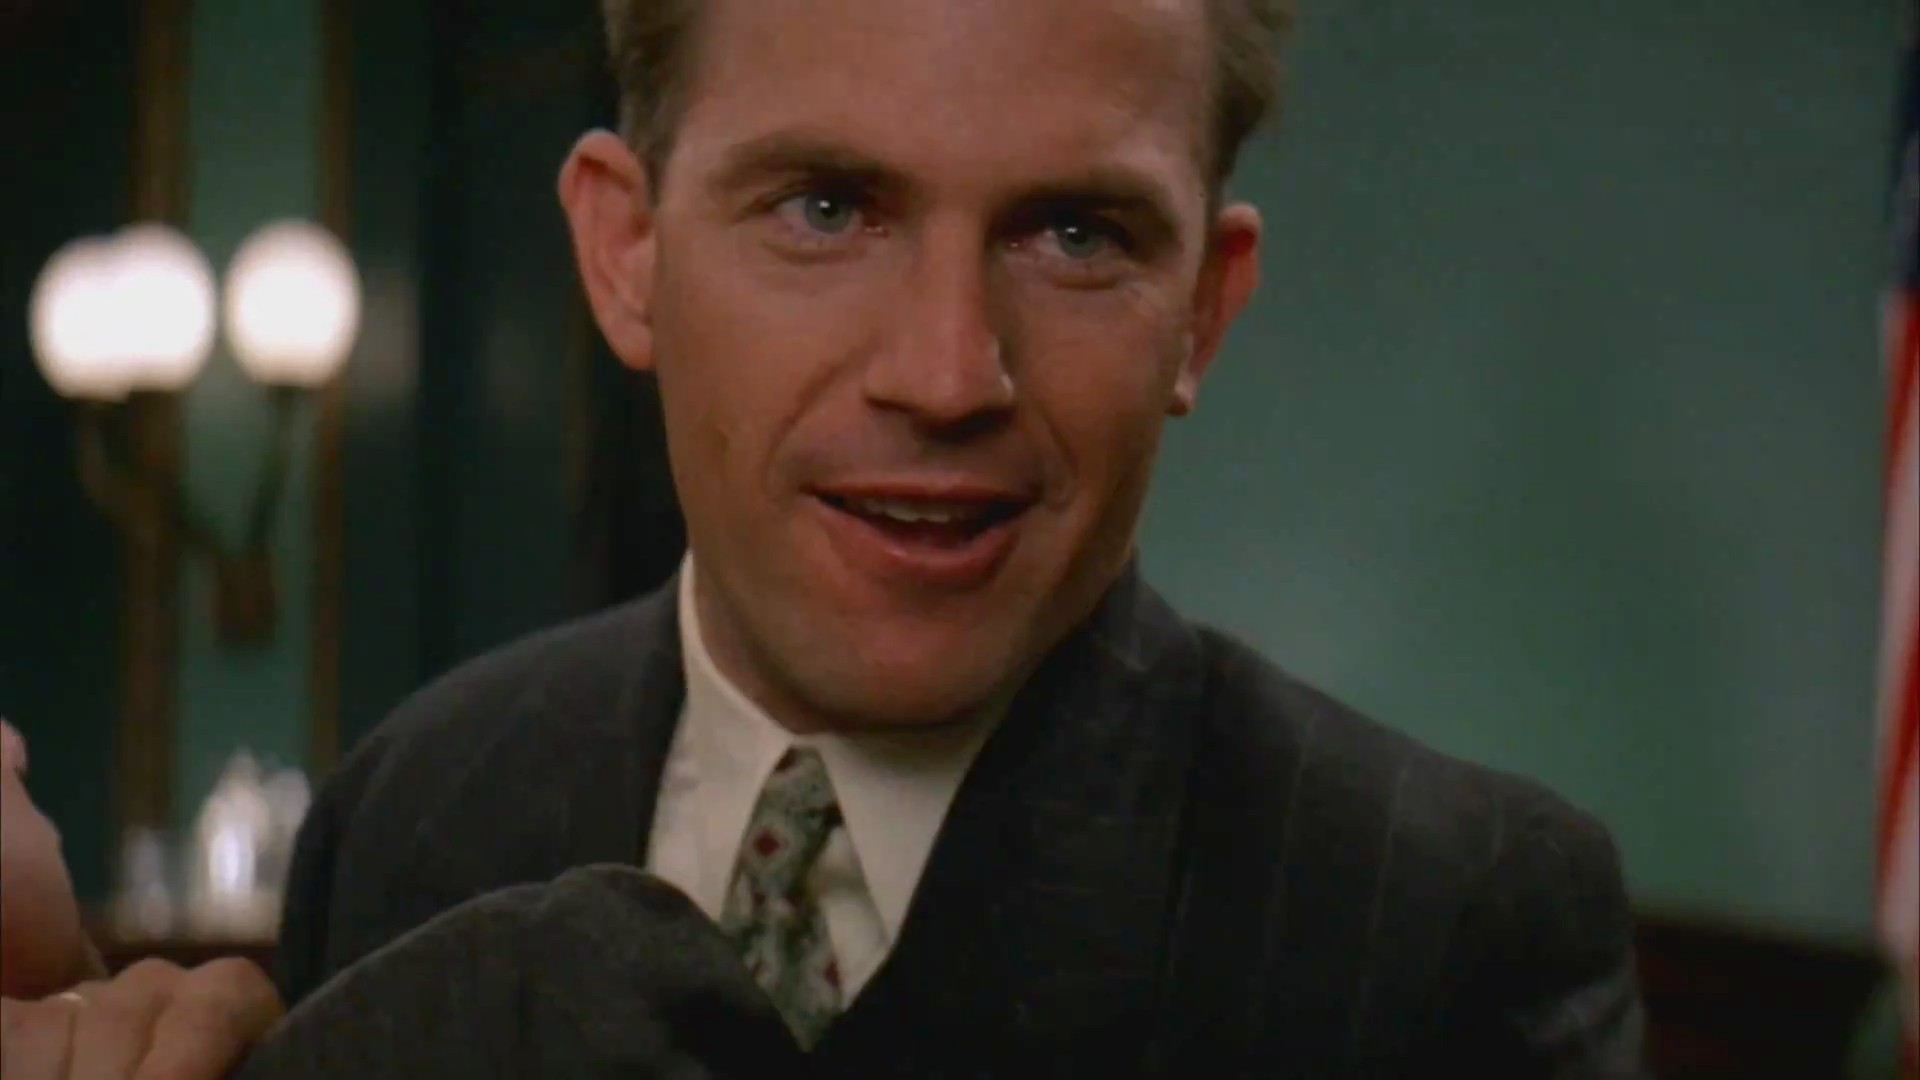 """Photo of Kevin Costner, portraying Eliot Ness in """"The Untouchables""""(1987). Source: The Official Trailer"""